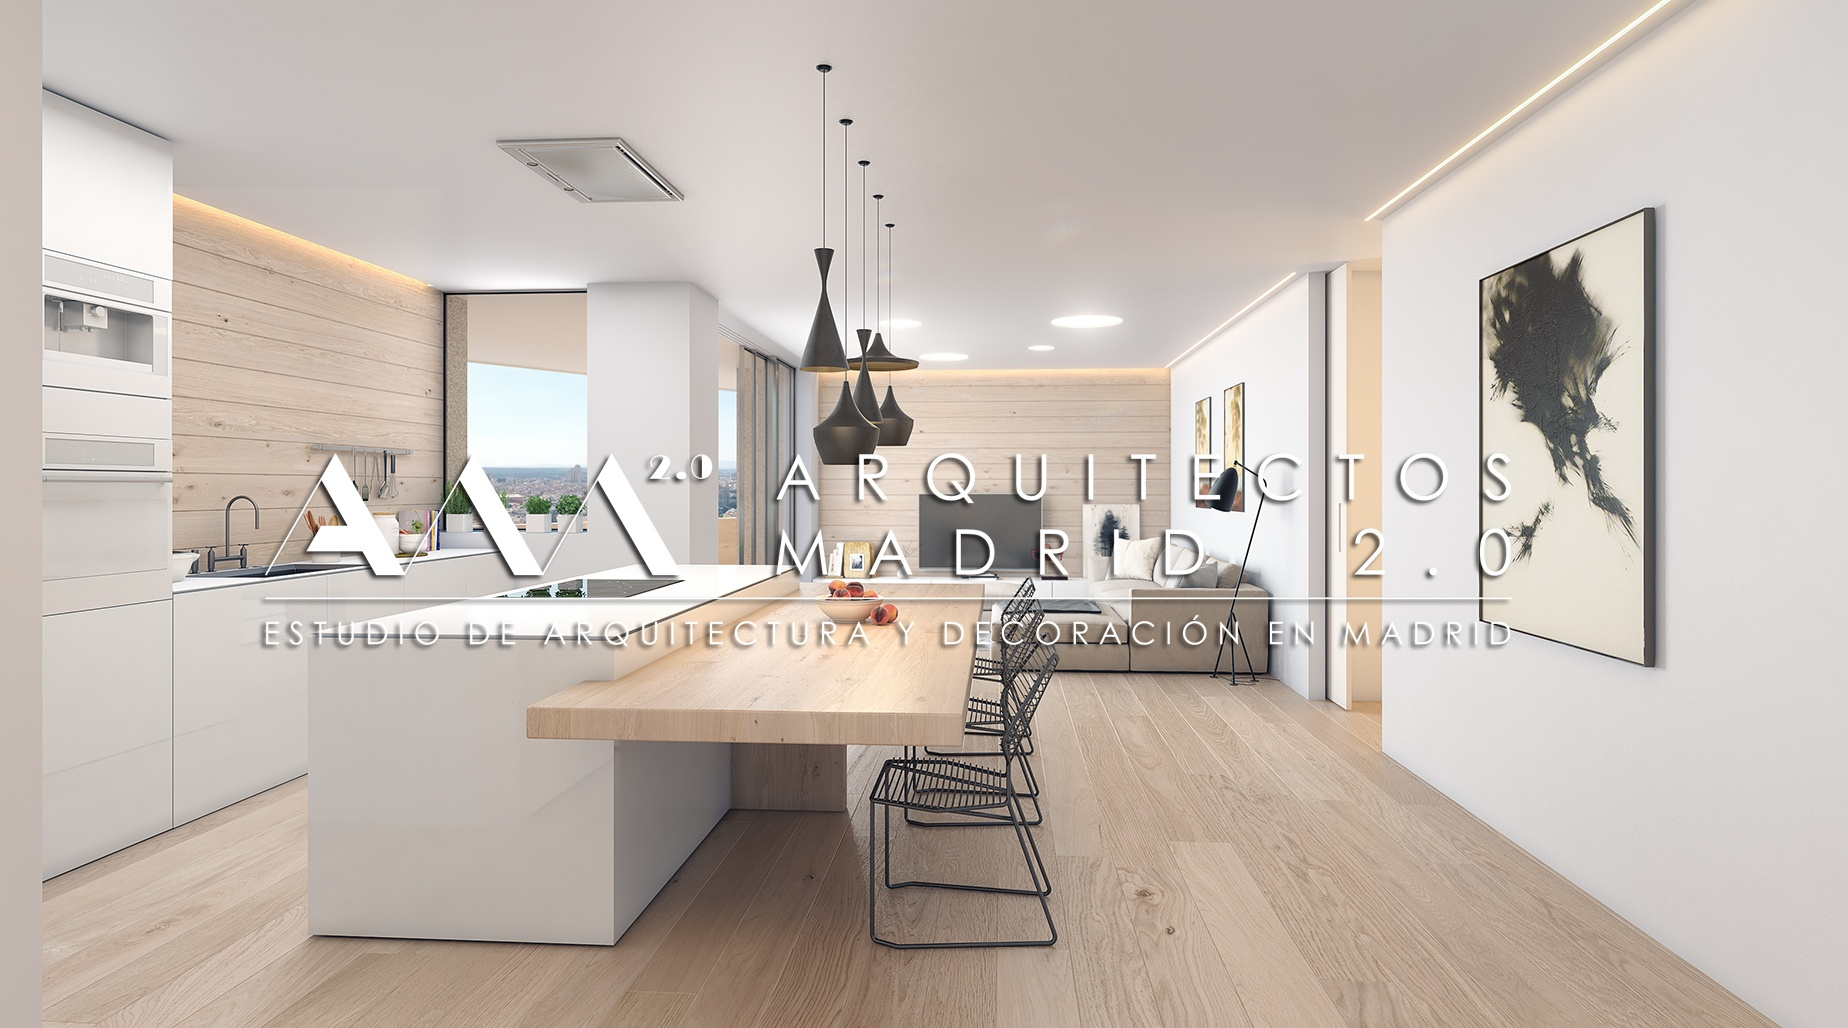 proyectos-arquitectura-decoracion-interiores-home-design-projects-architects-madrid